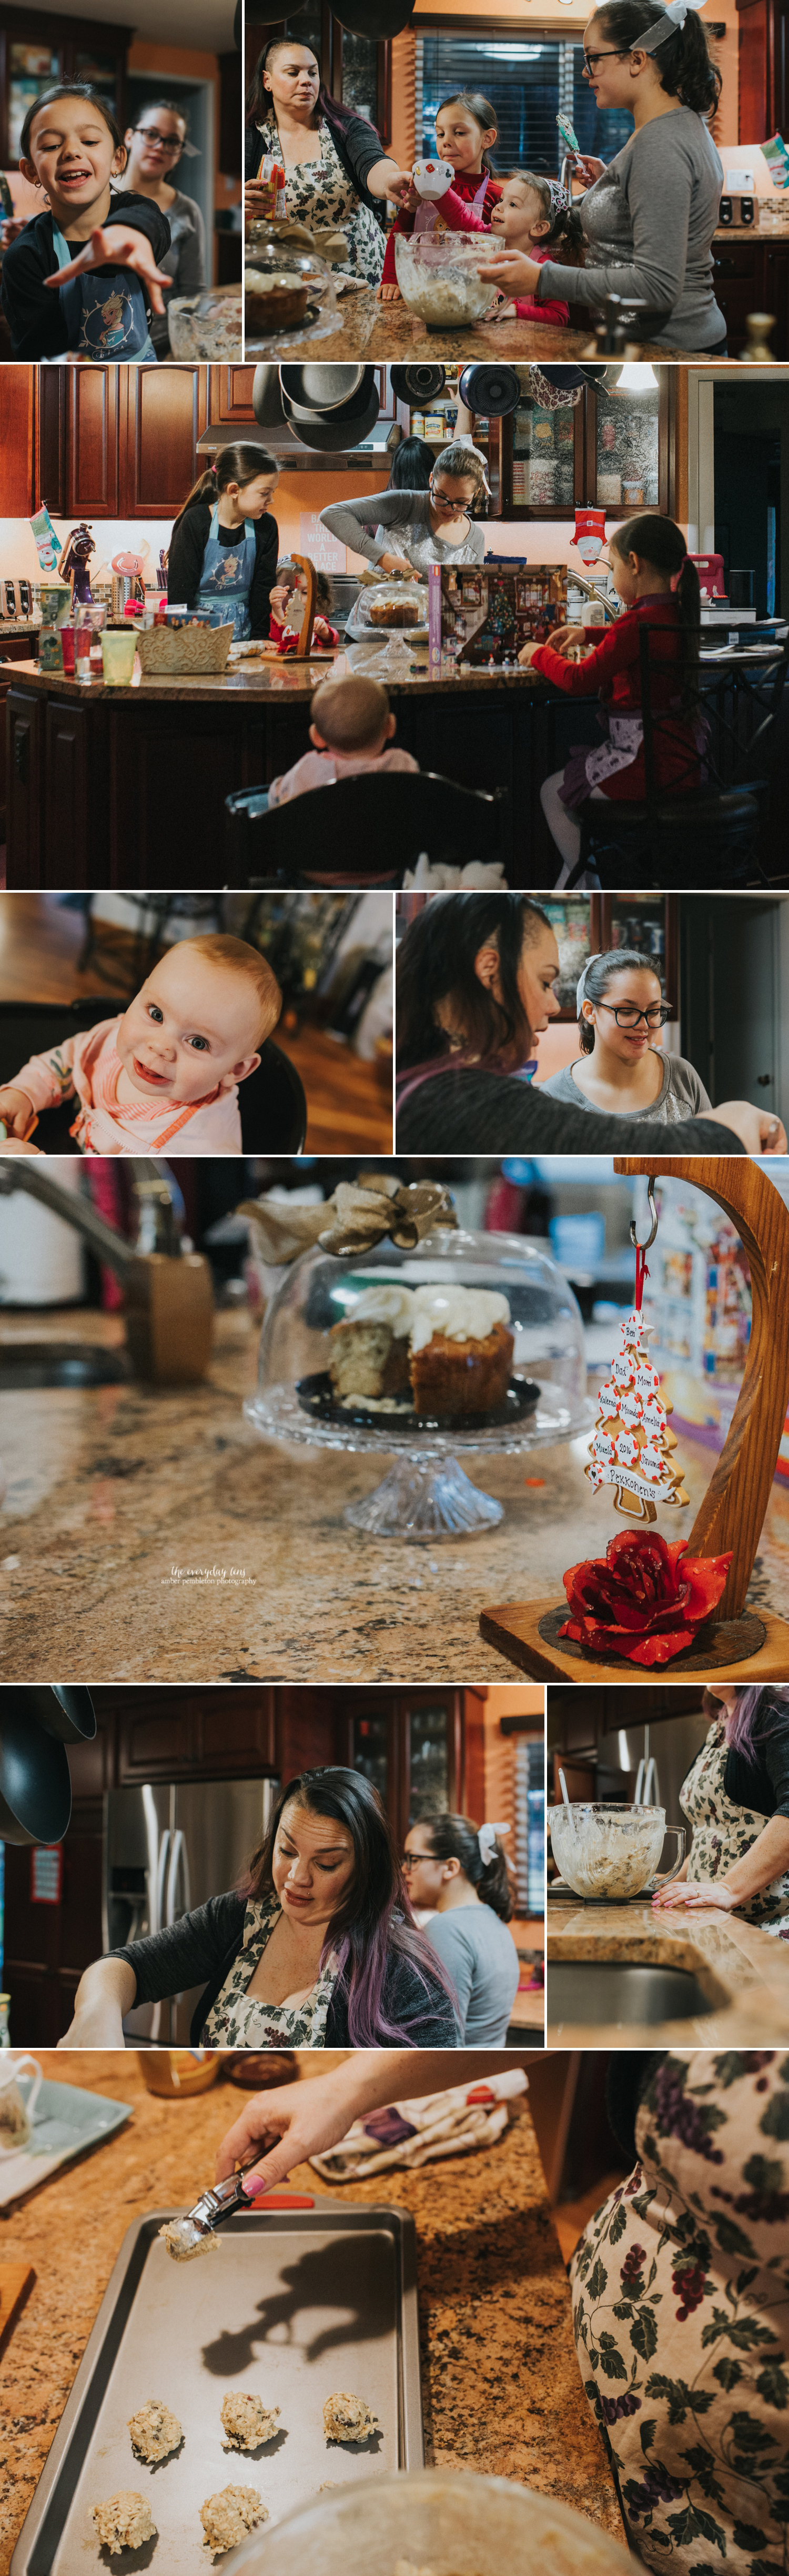 family-making-cookies-together-photography-session.jpg